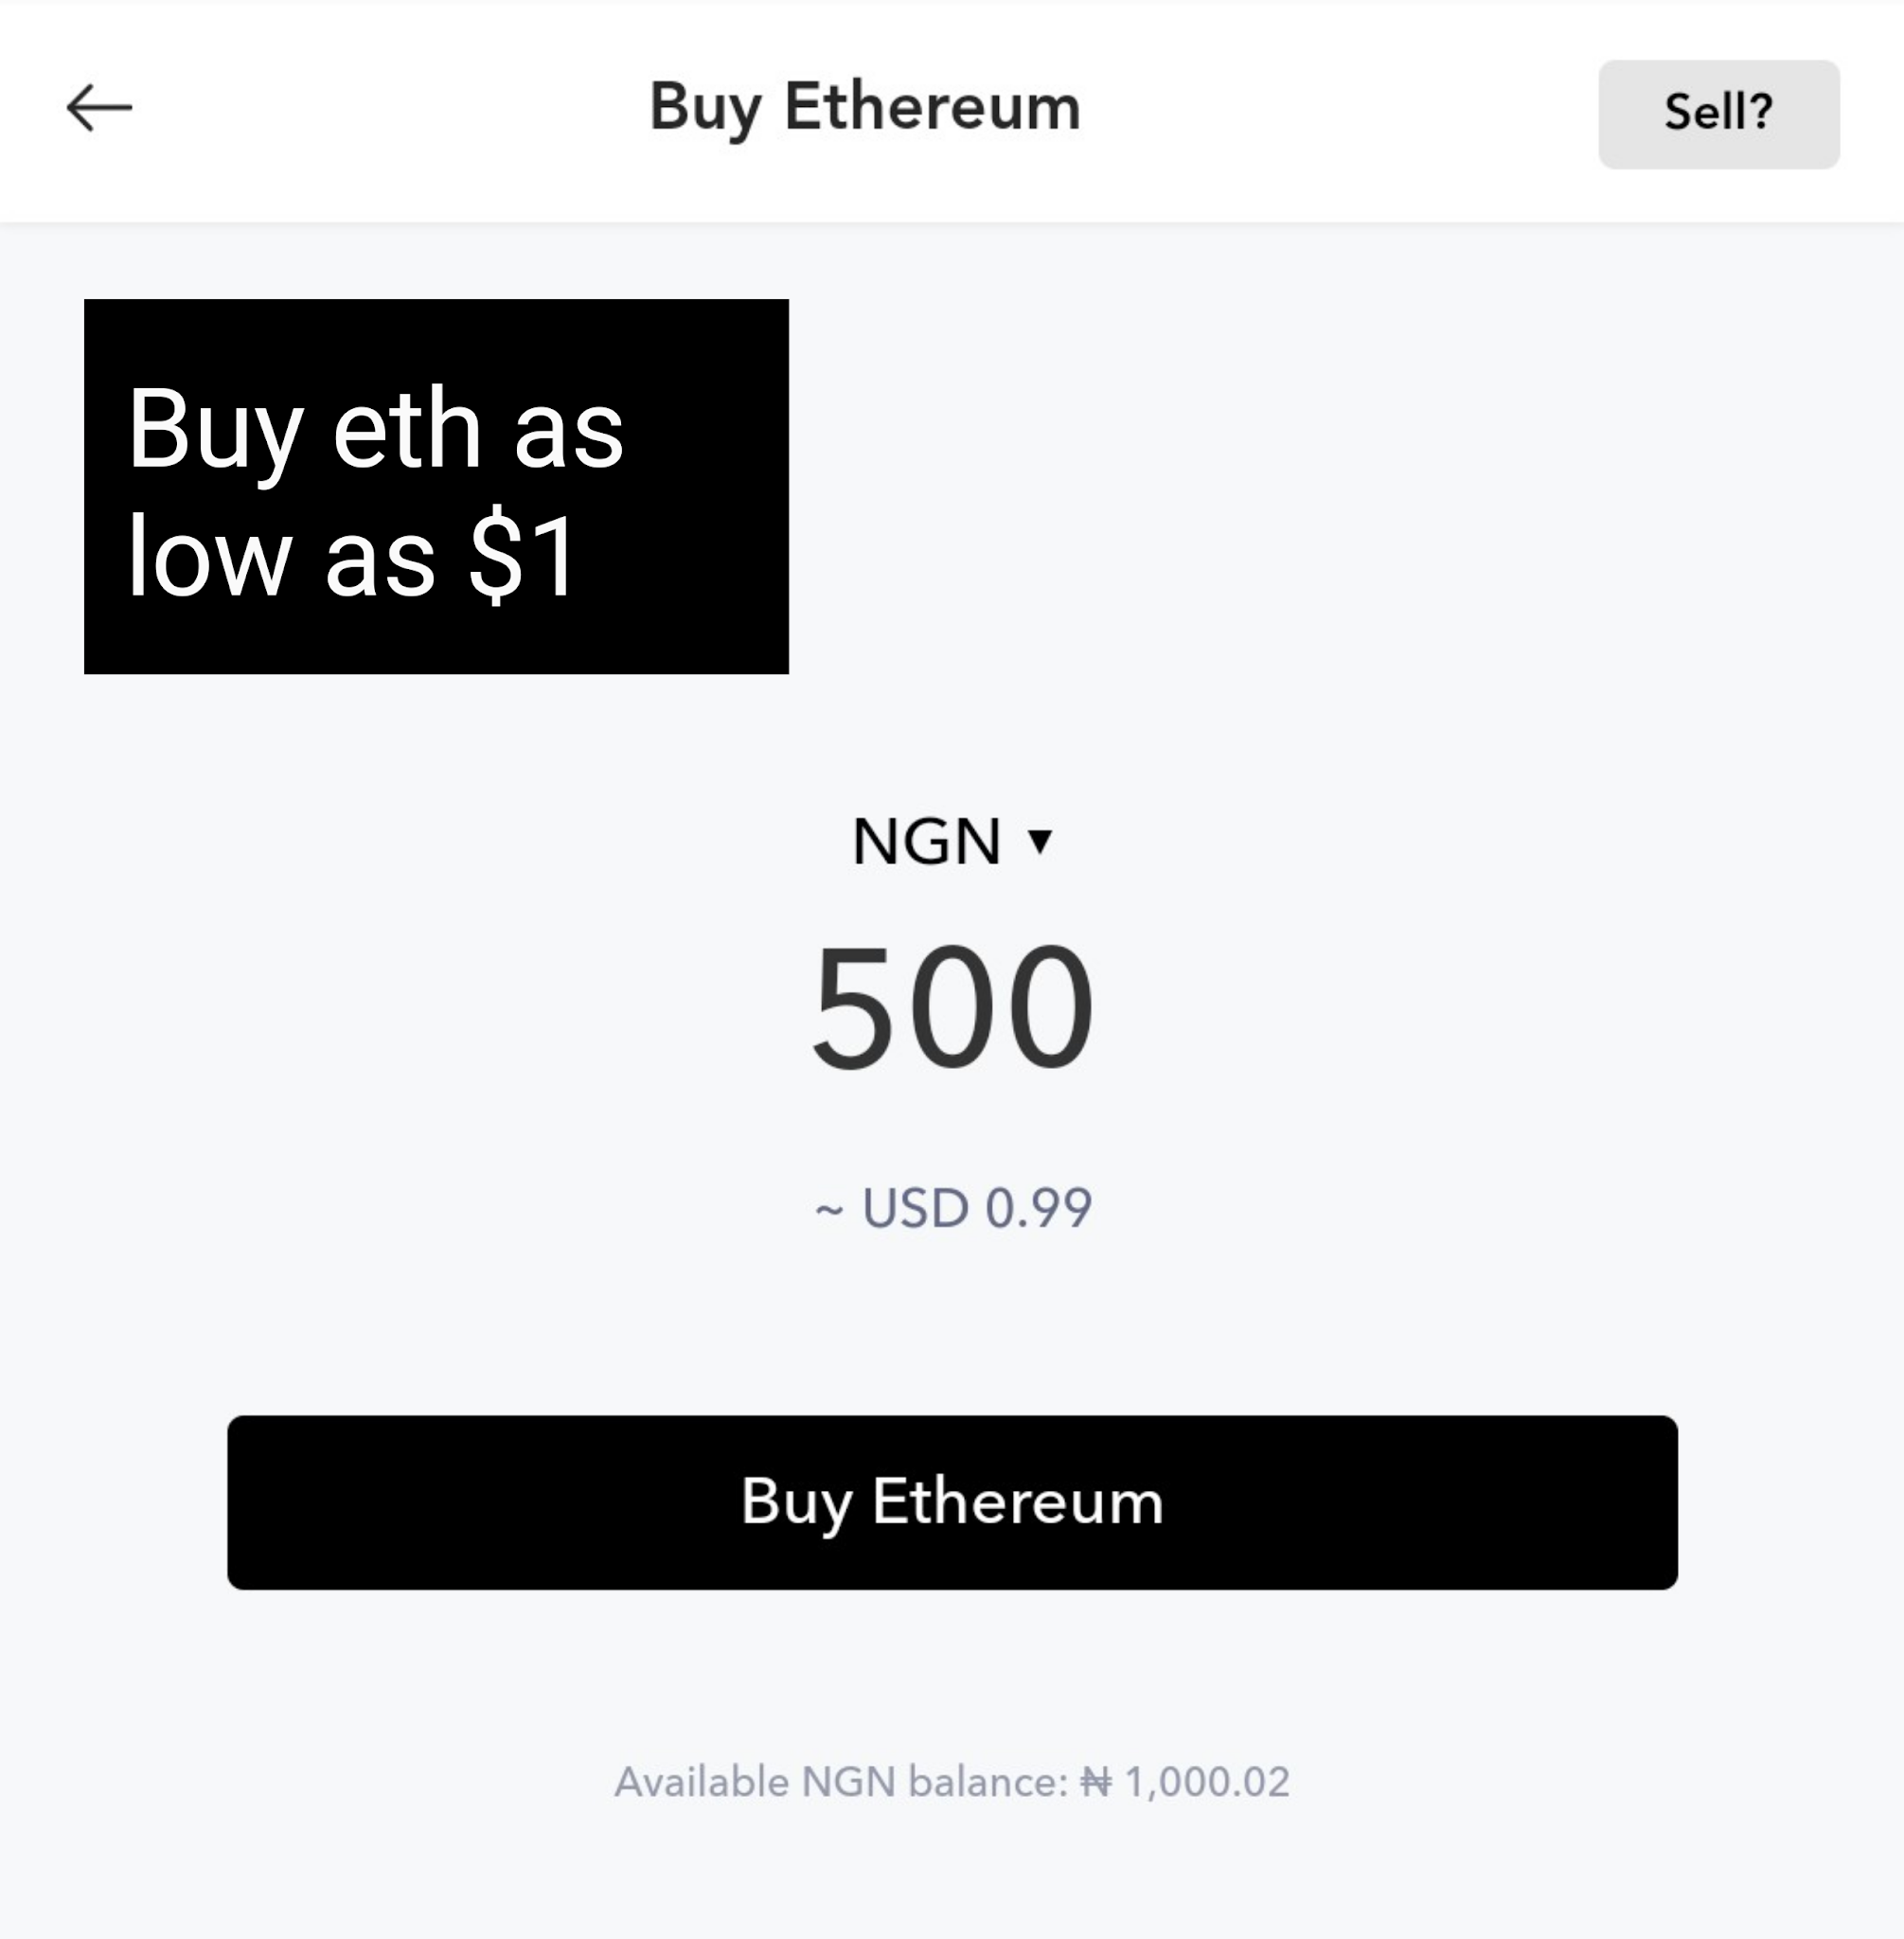 Buy crypto as low as NGN 500